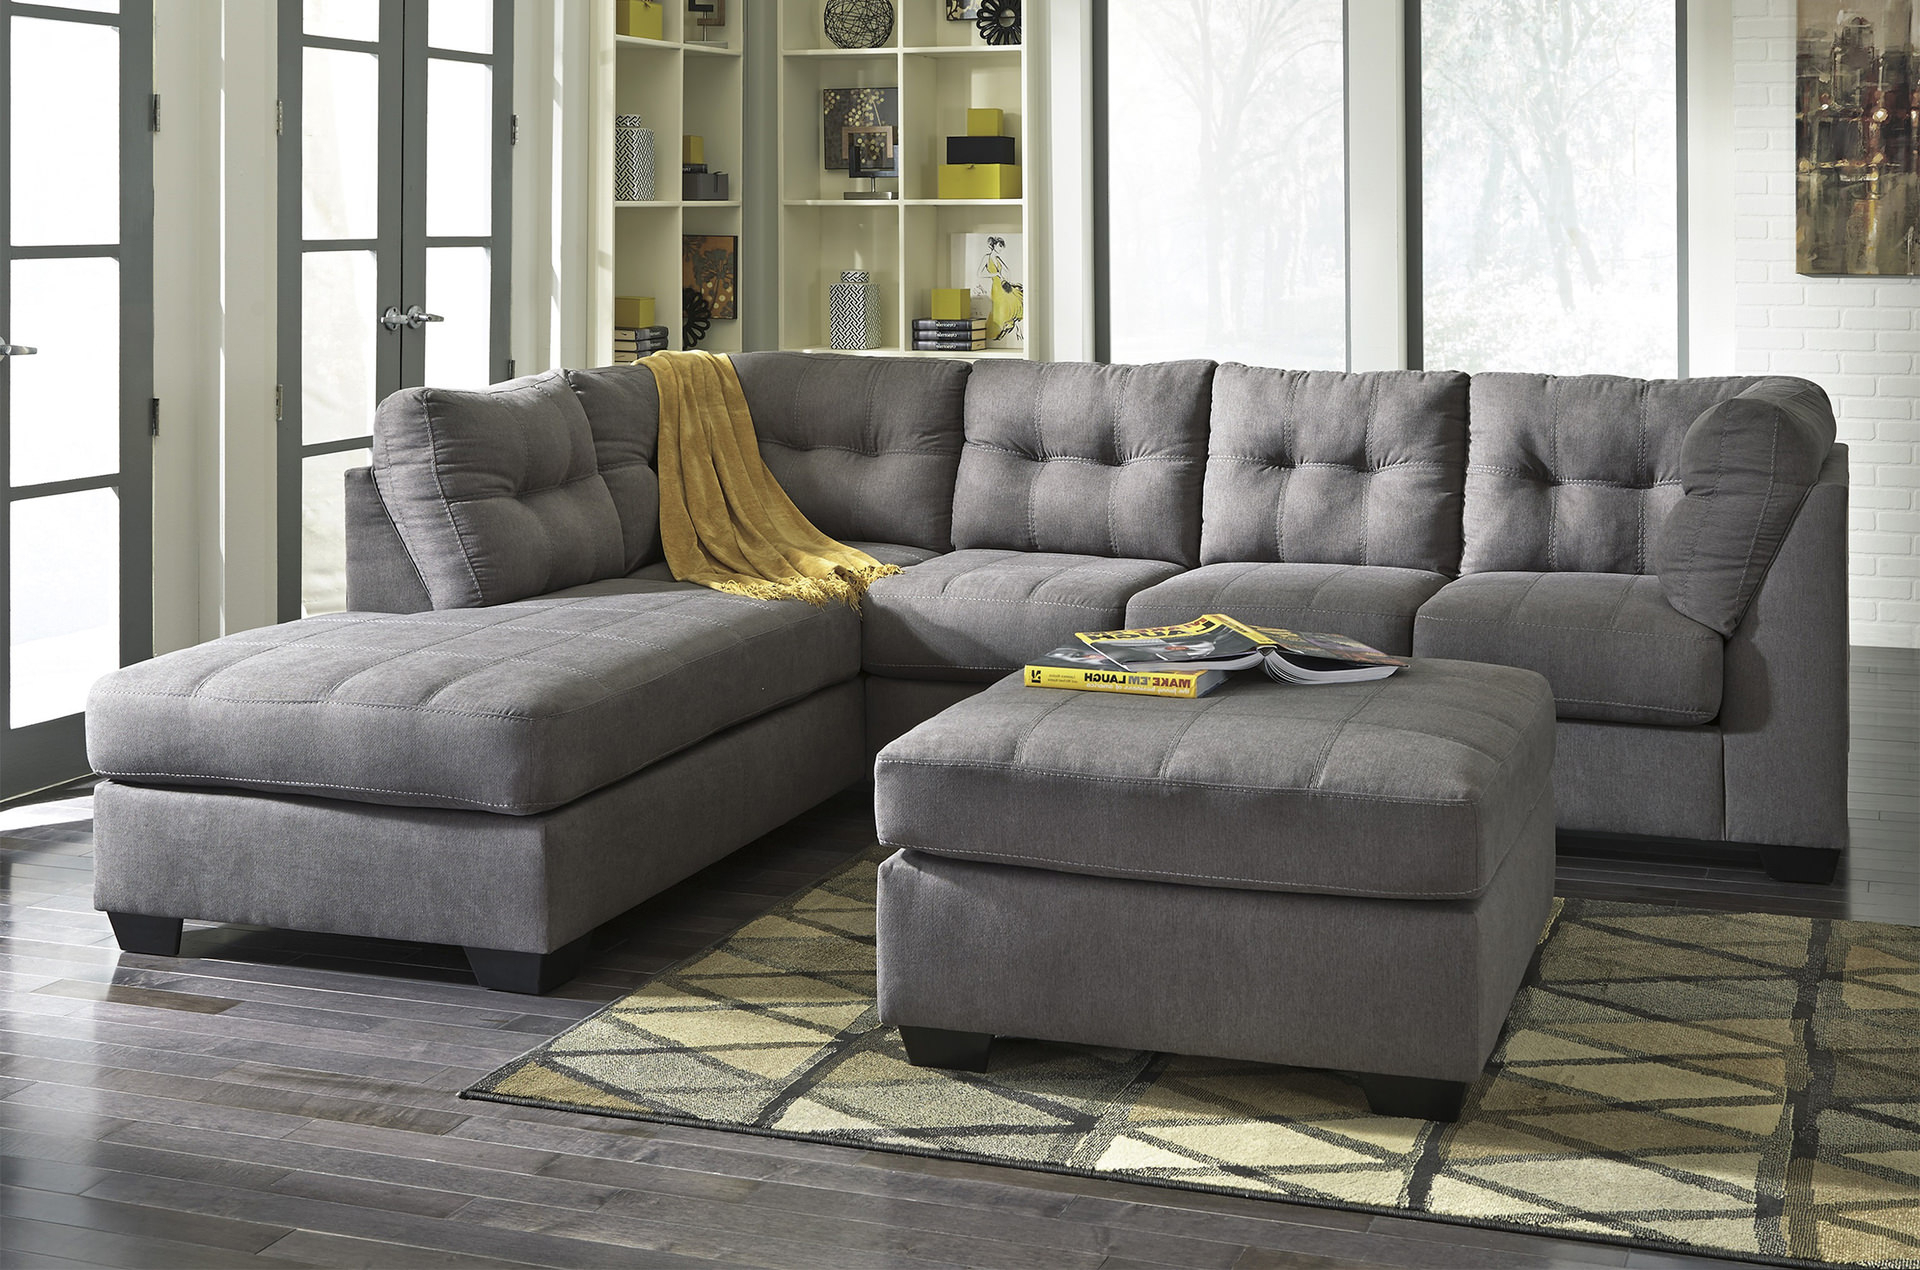 Newest Malbry Point 3 Piece Sectionals With Raf Chaise In Sectional Matters – Design Bloghom Furniture (Gallery 15 of 20)